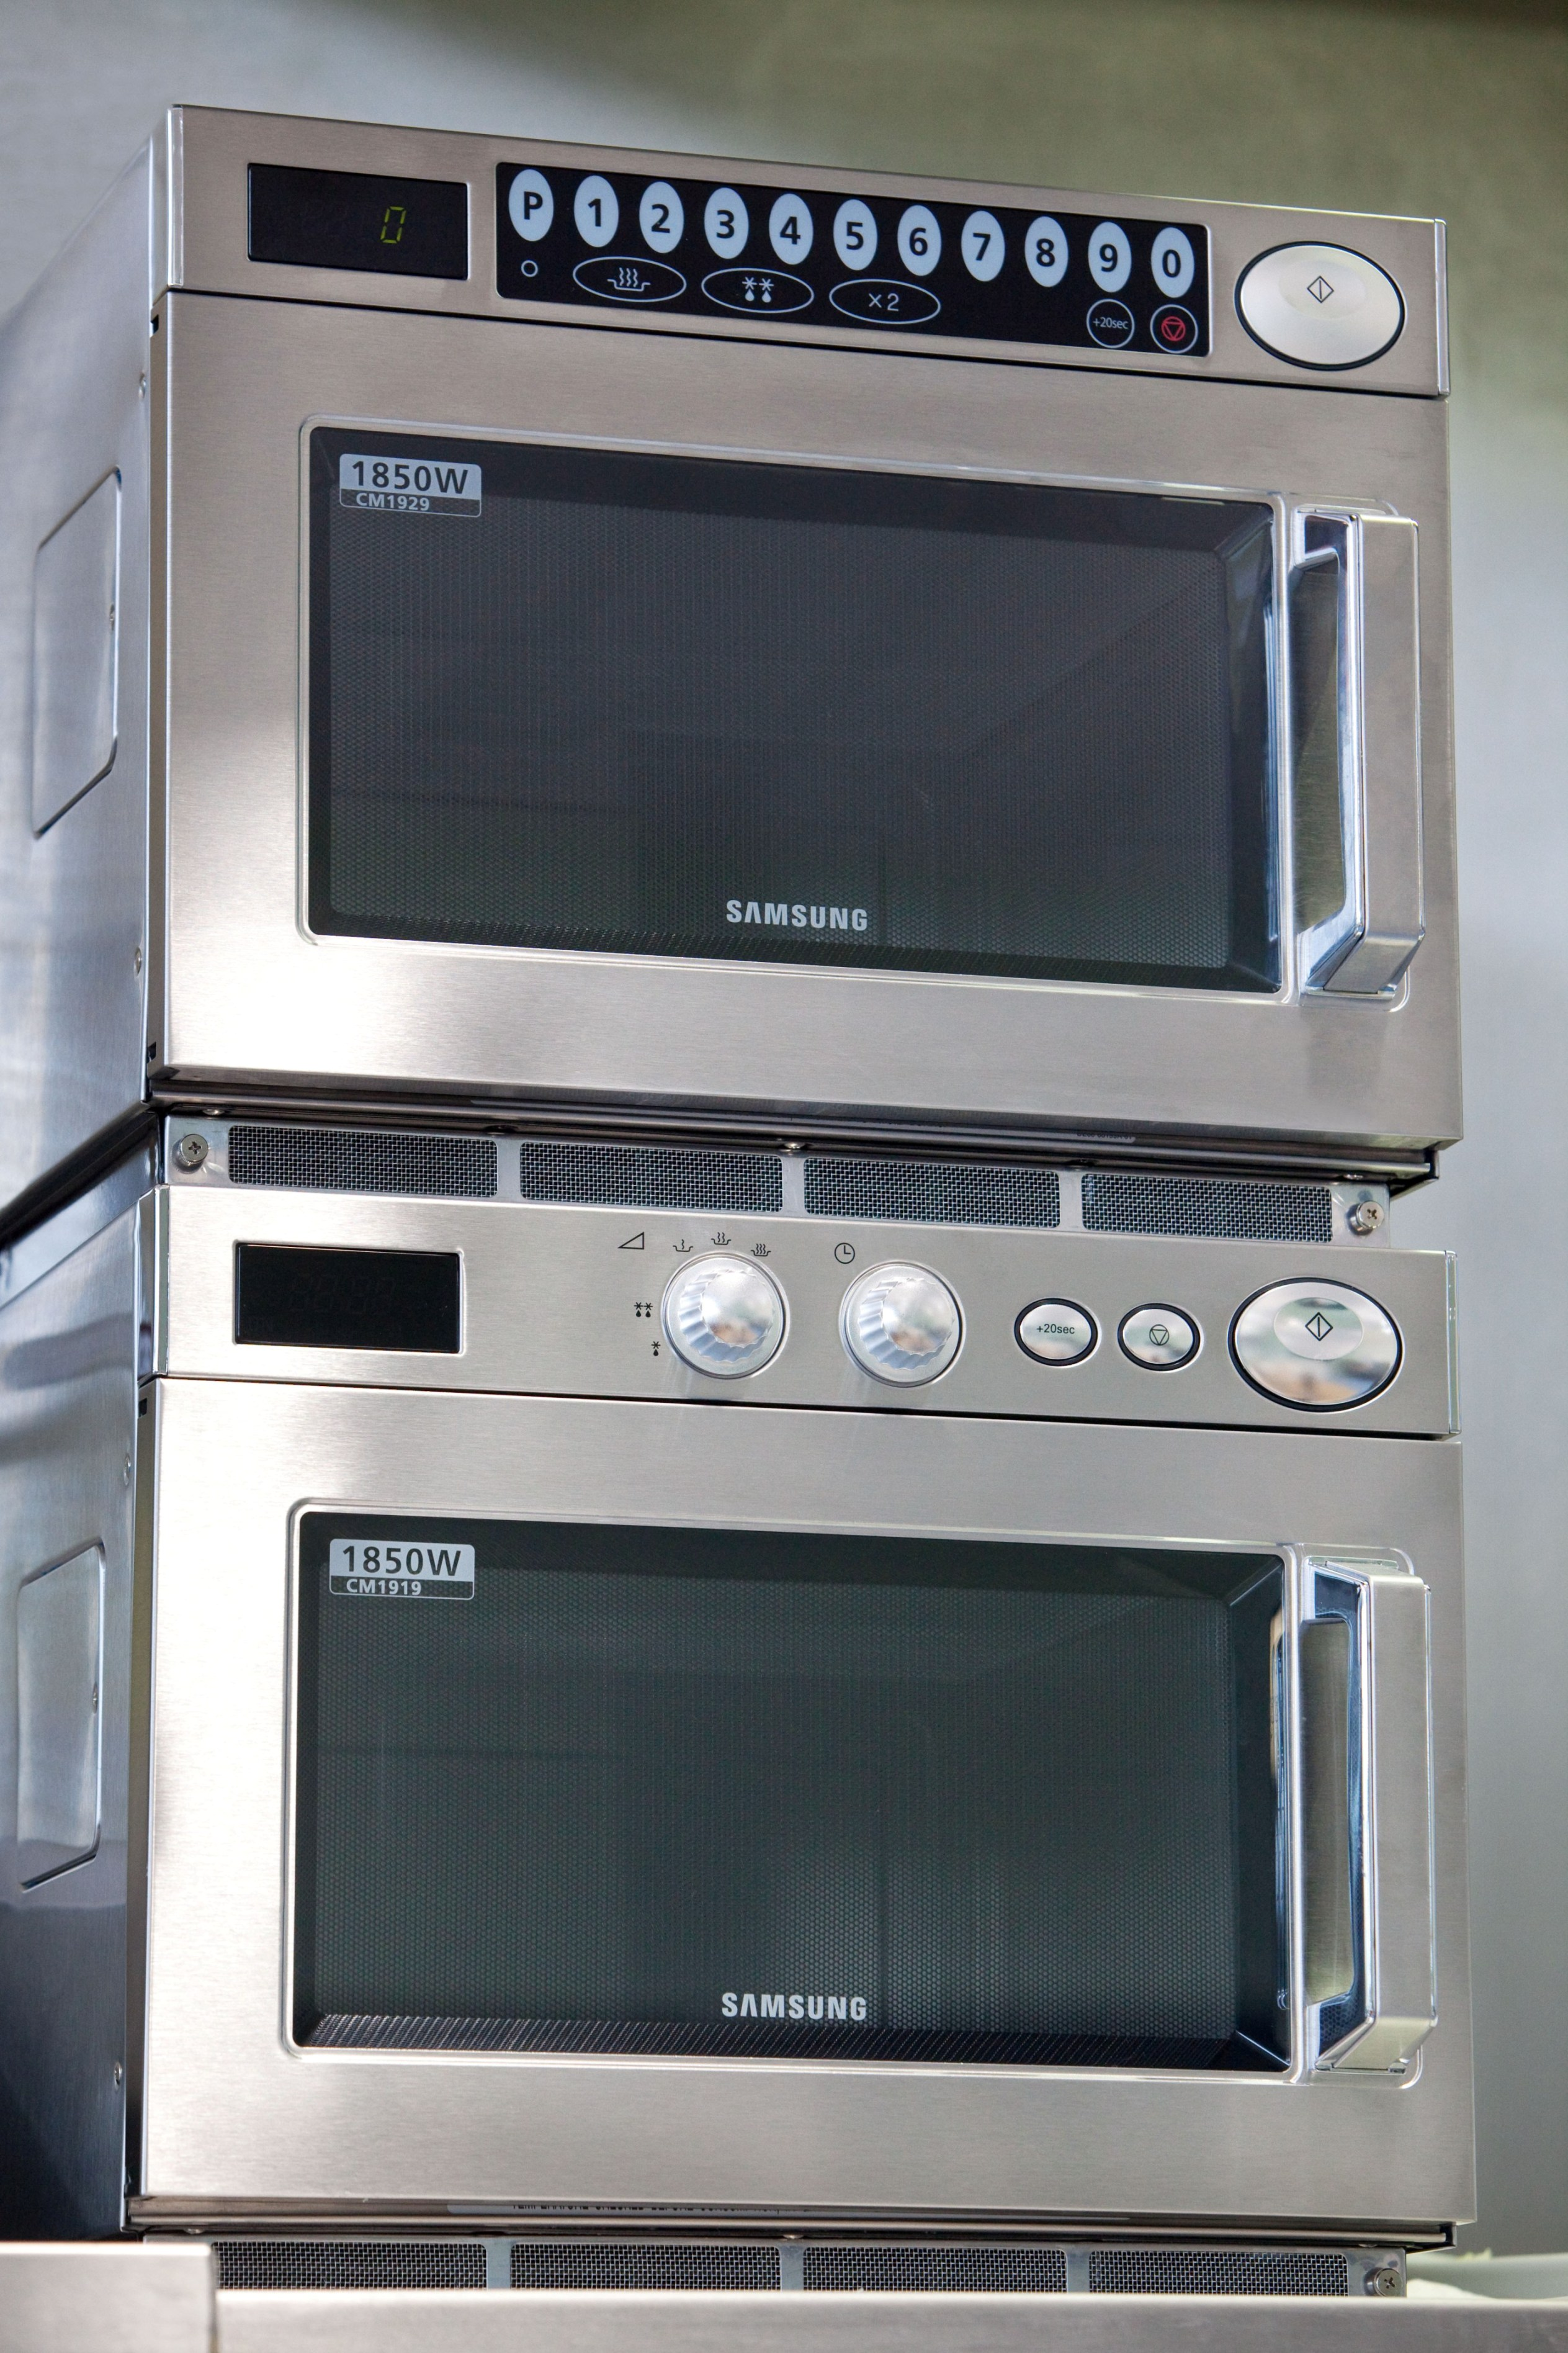 Heavy Duty Microwaves Samsung Heavy Duty Commercial Microwave Ovens The Publicity